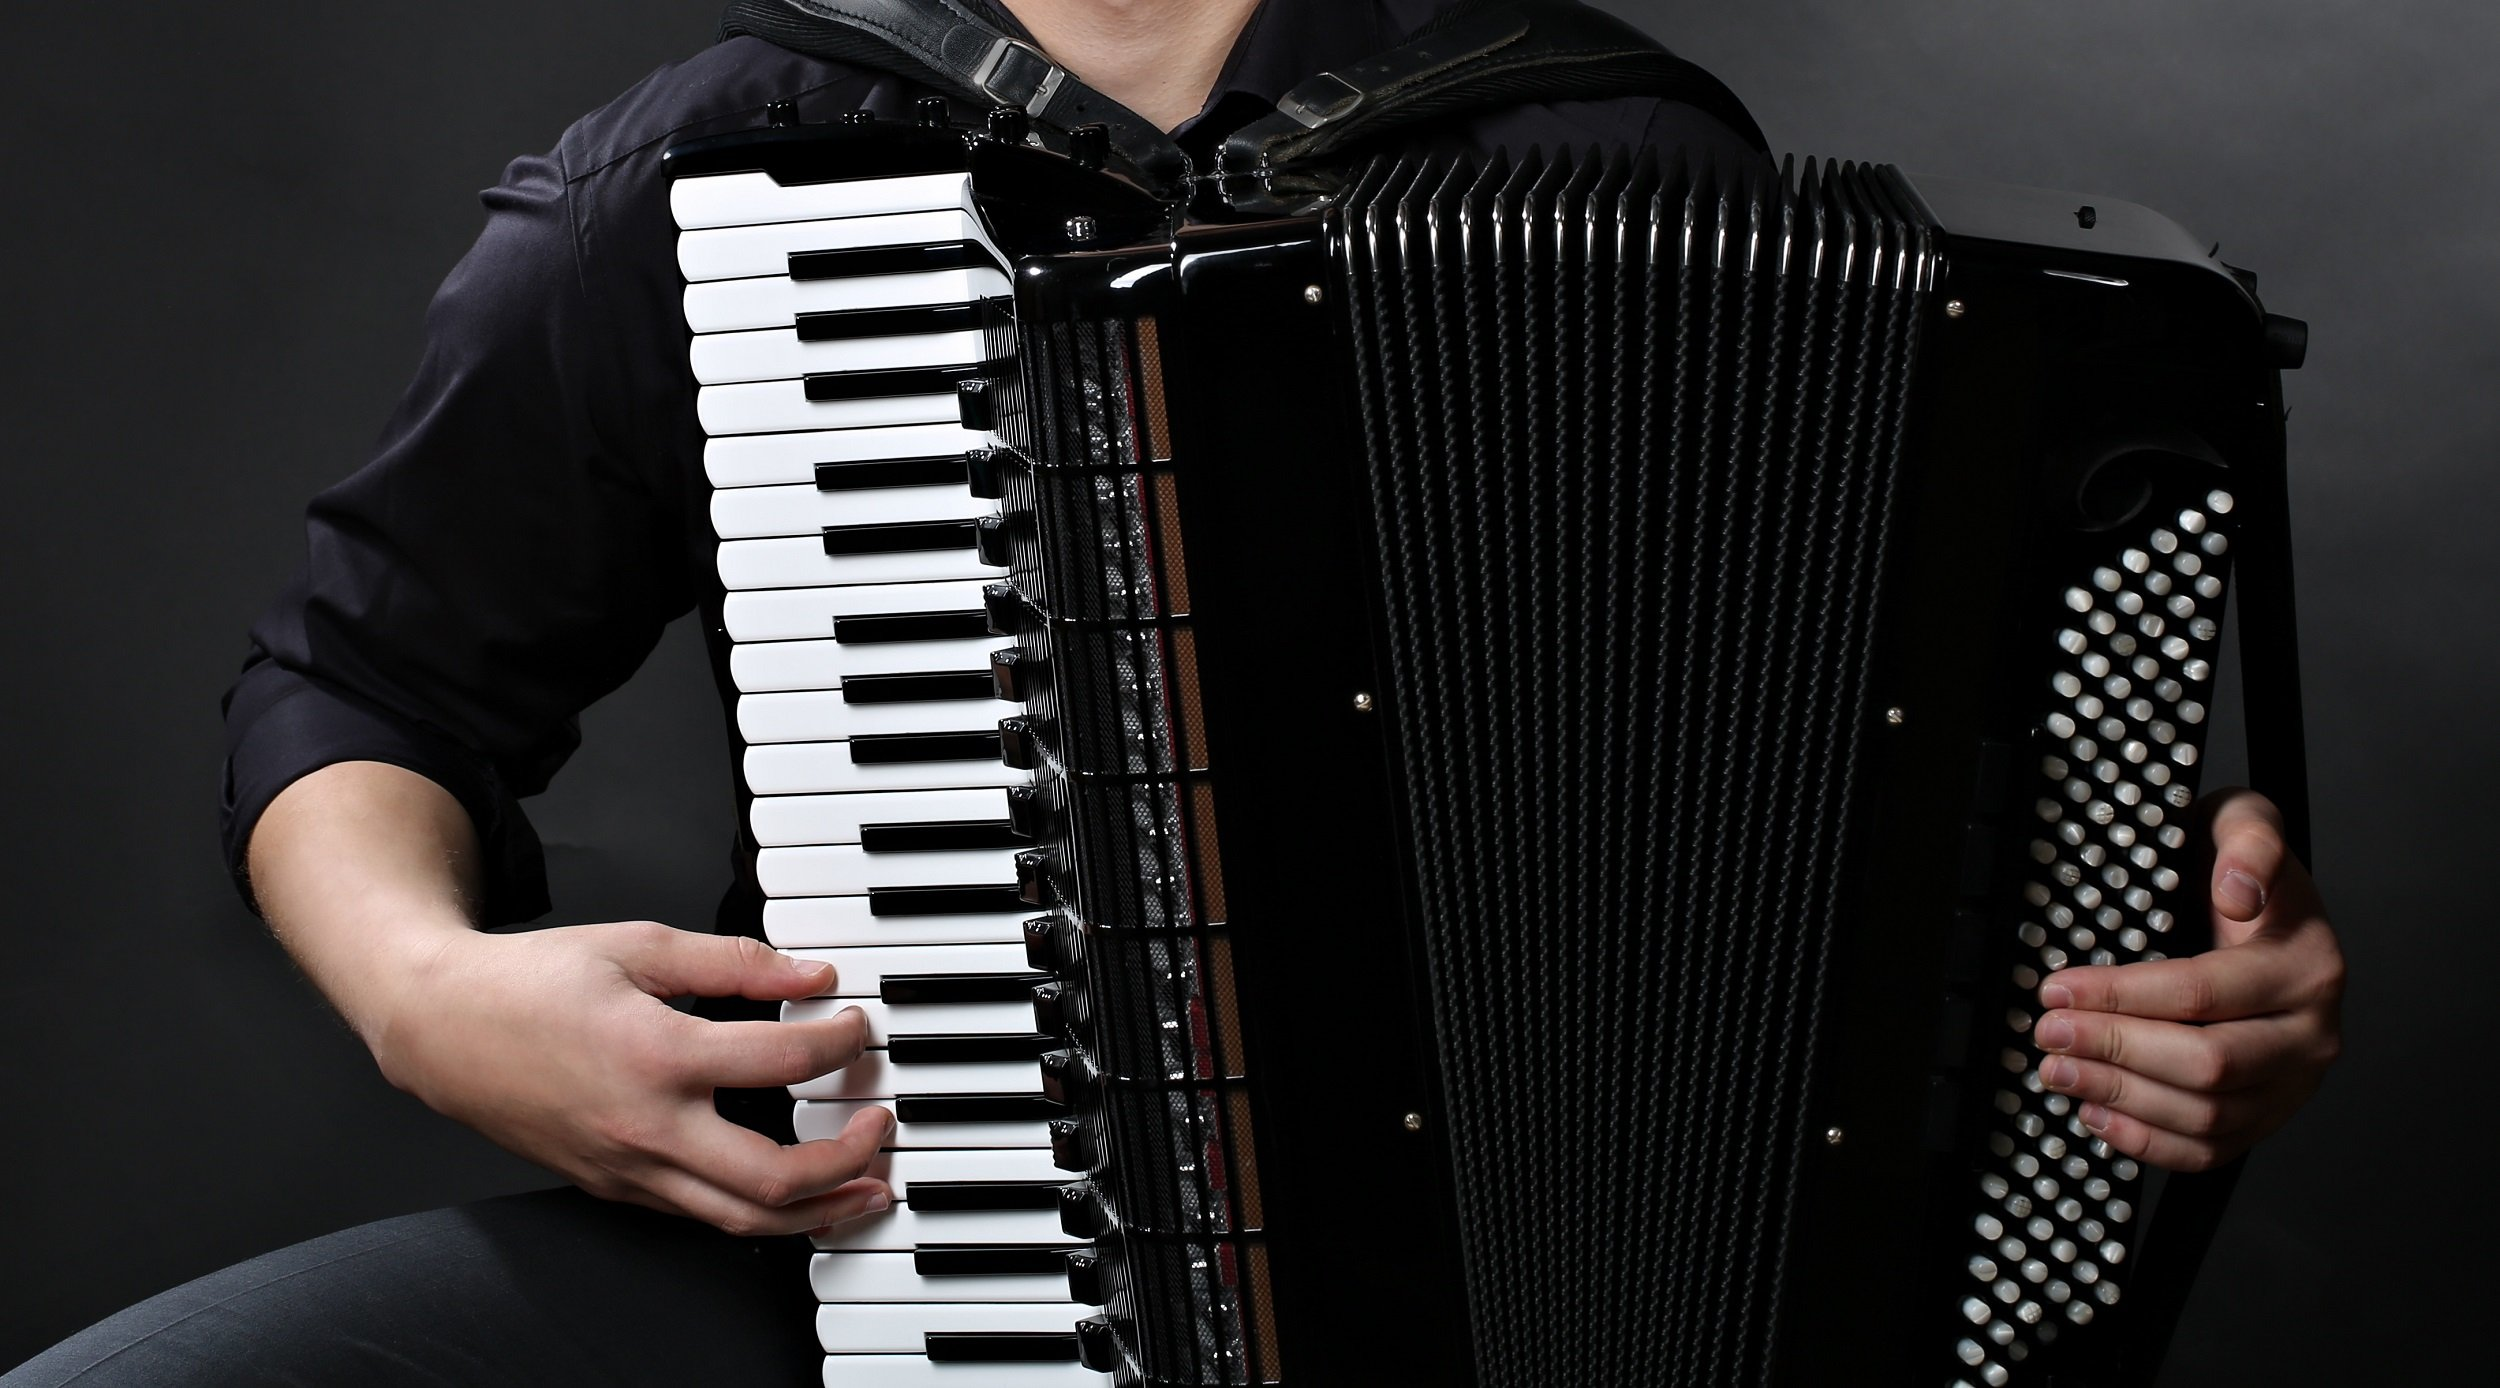 Accordion Player Covers 10 Difficulty Levels of Tetris